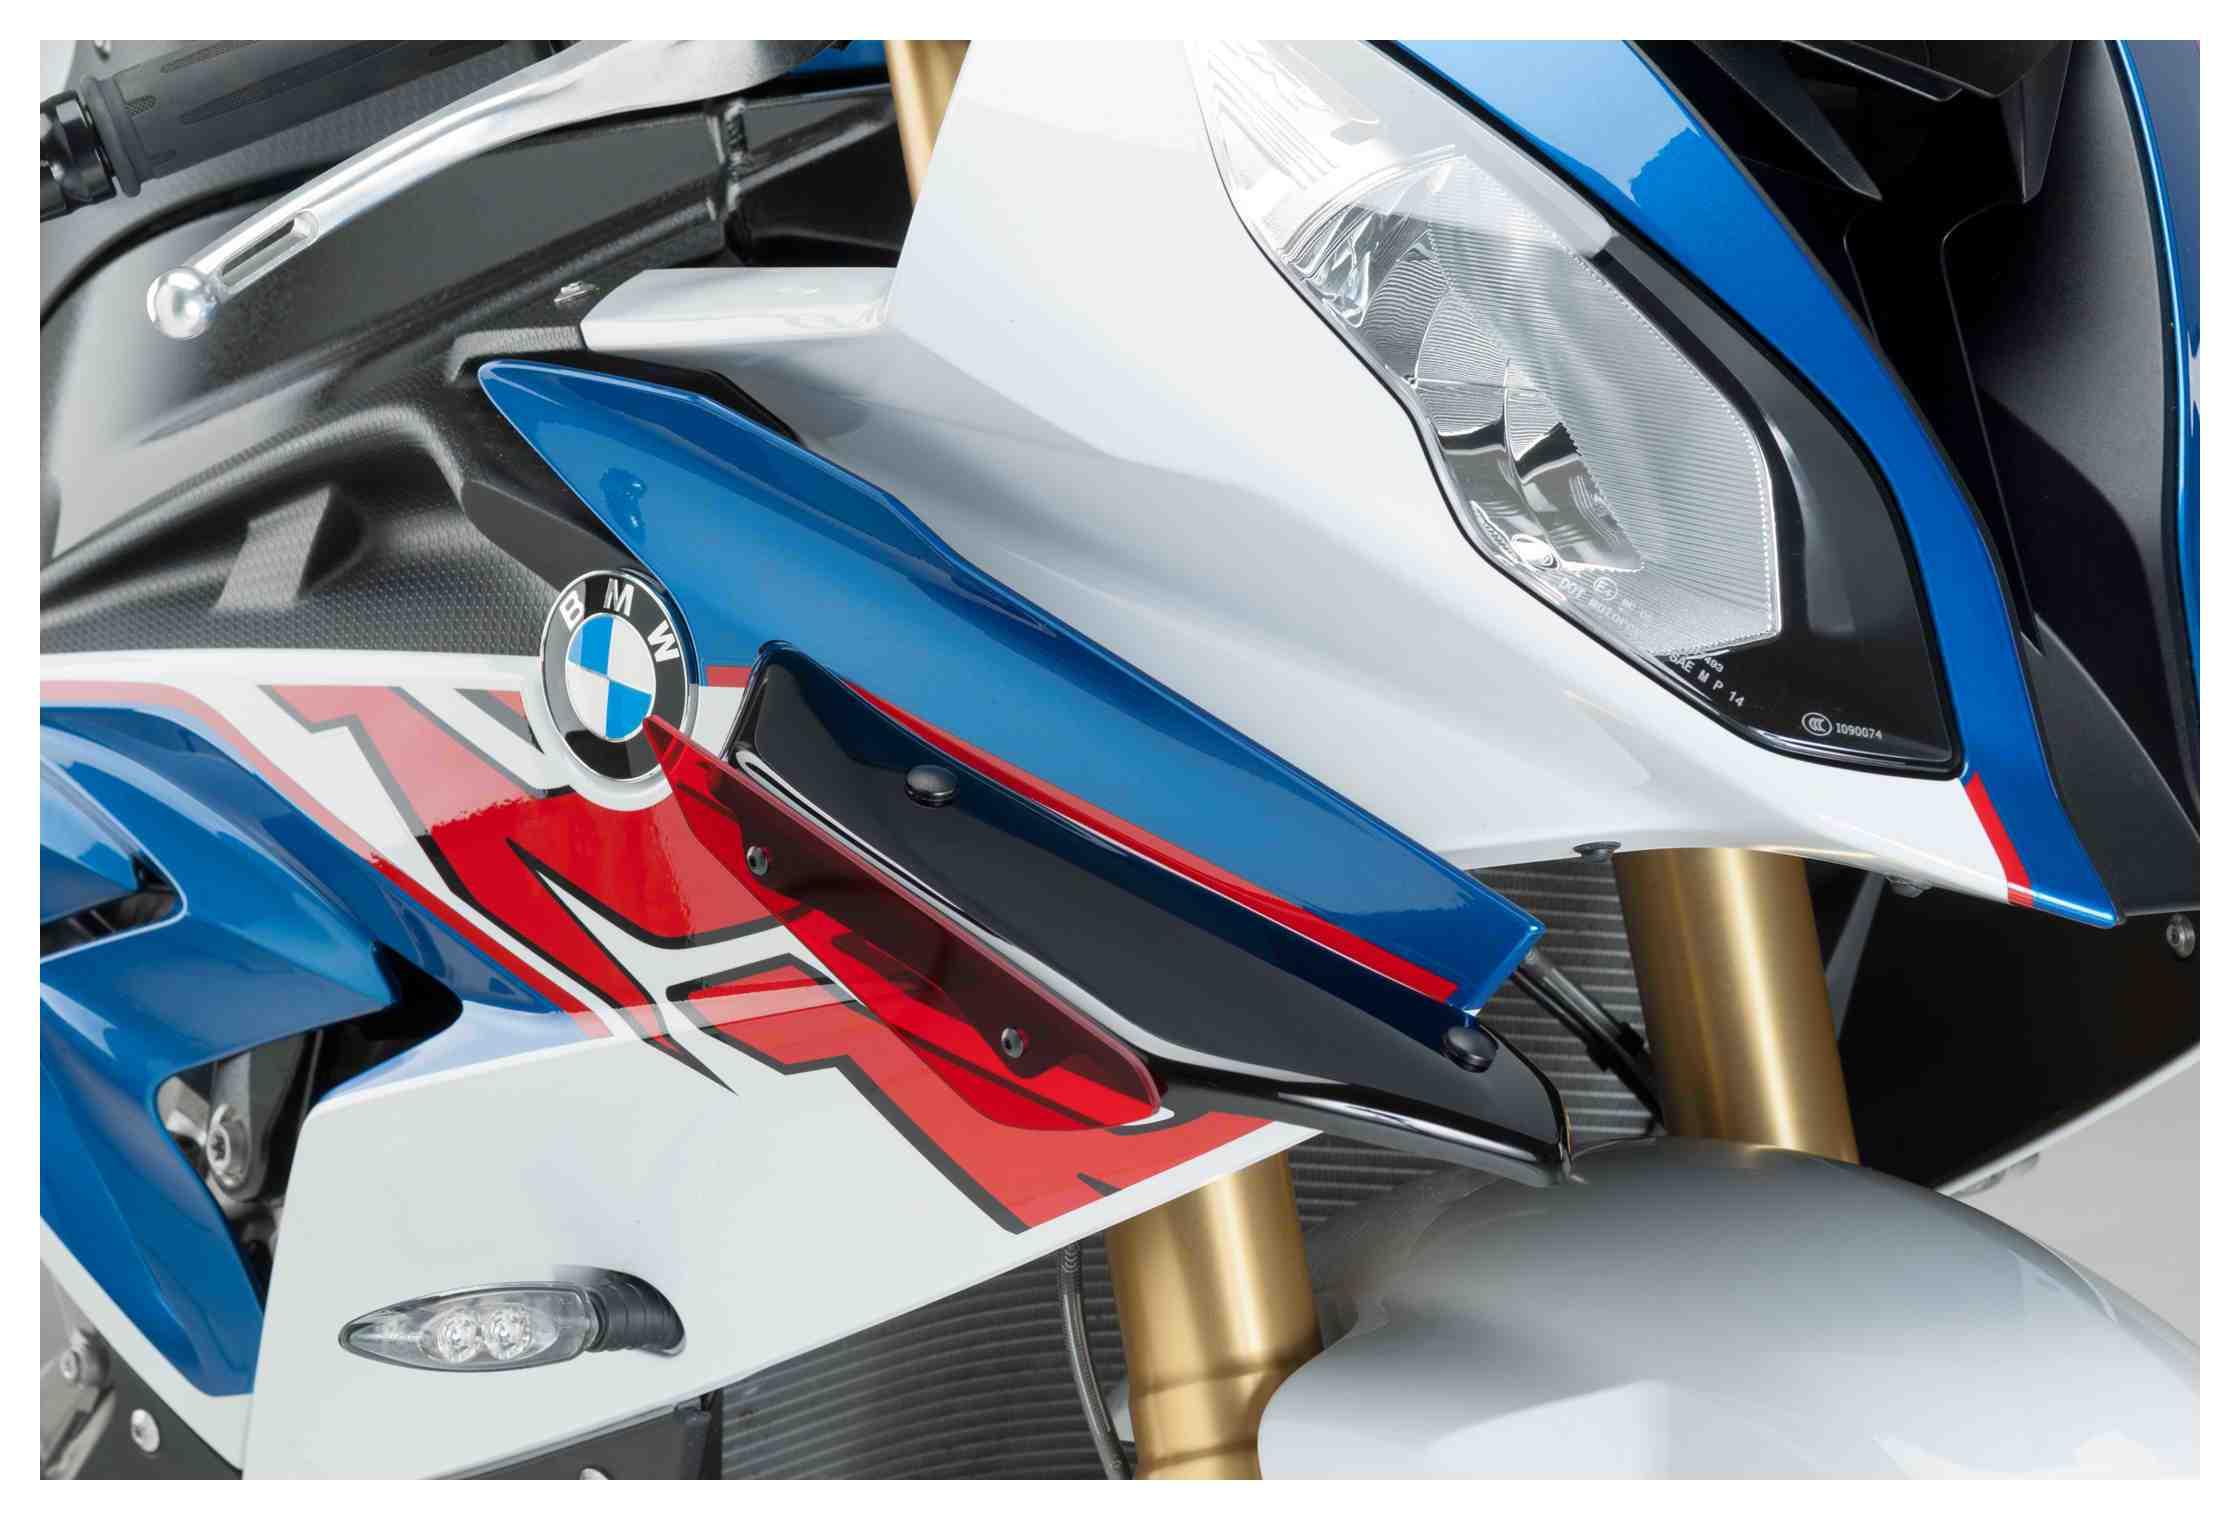 Puig Downforce Spoilers Bmw S1000rr 2015 2019 5 11 76 Off